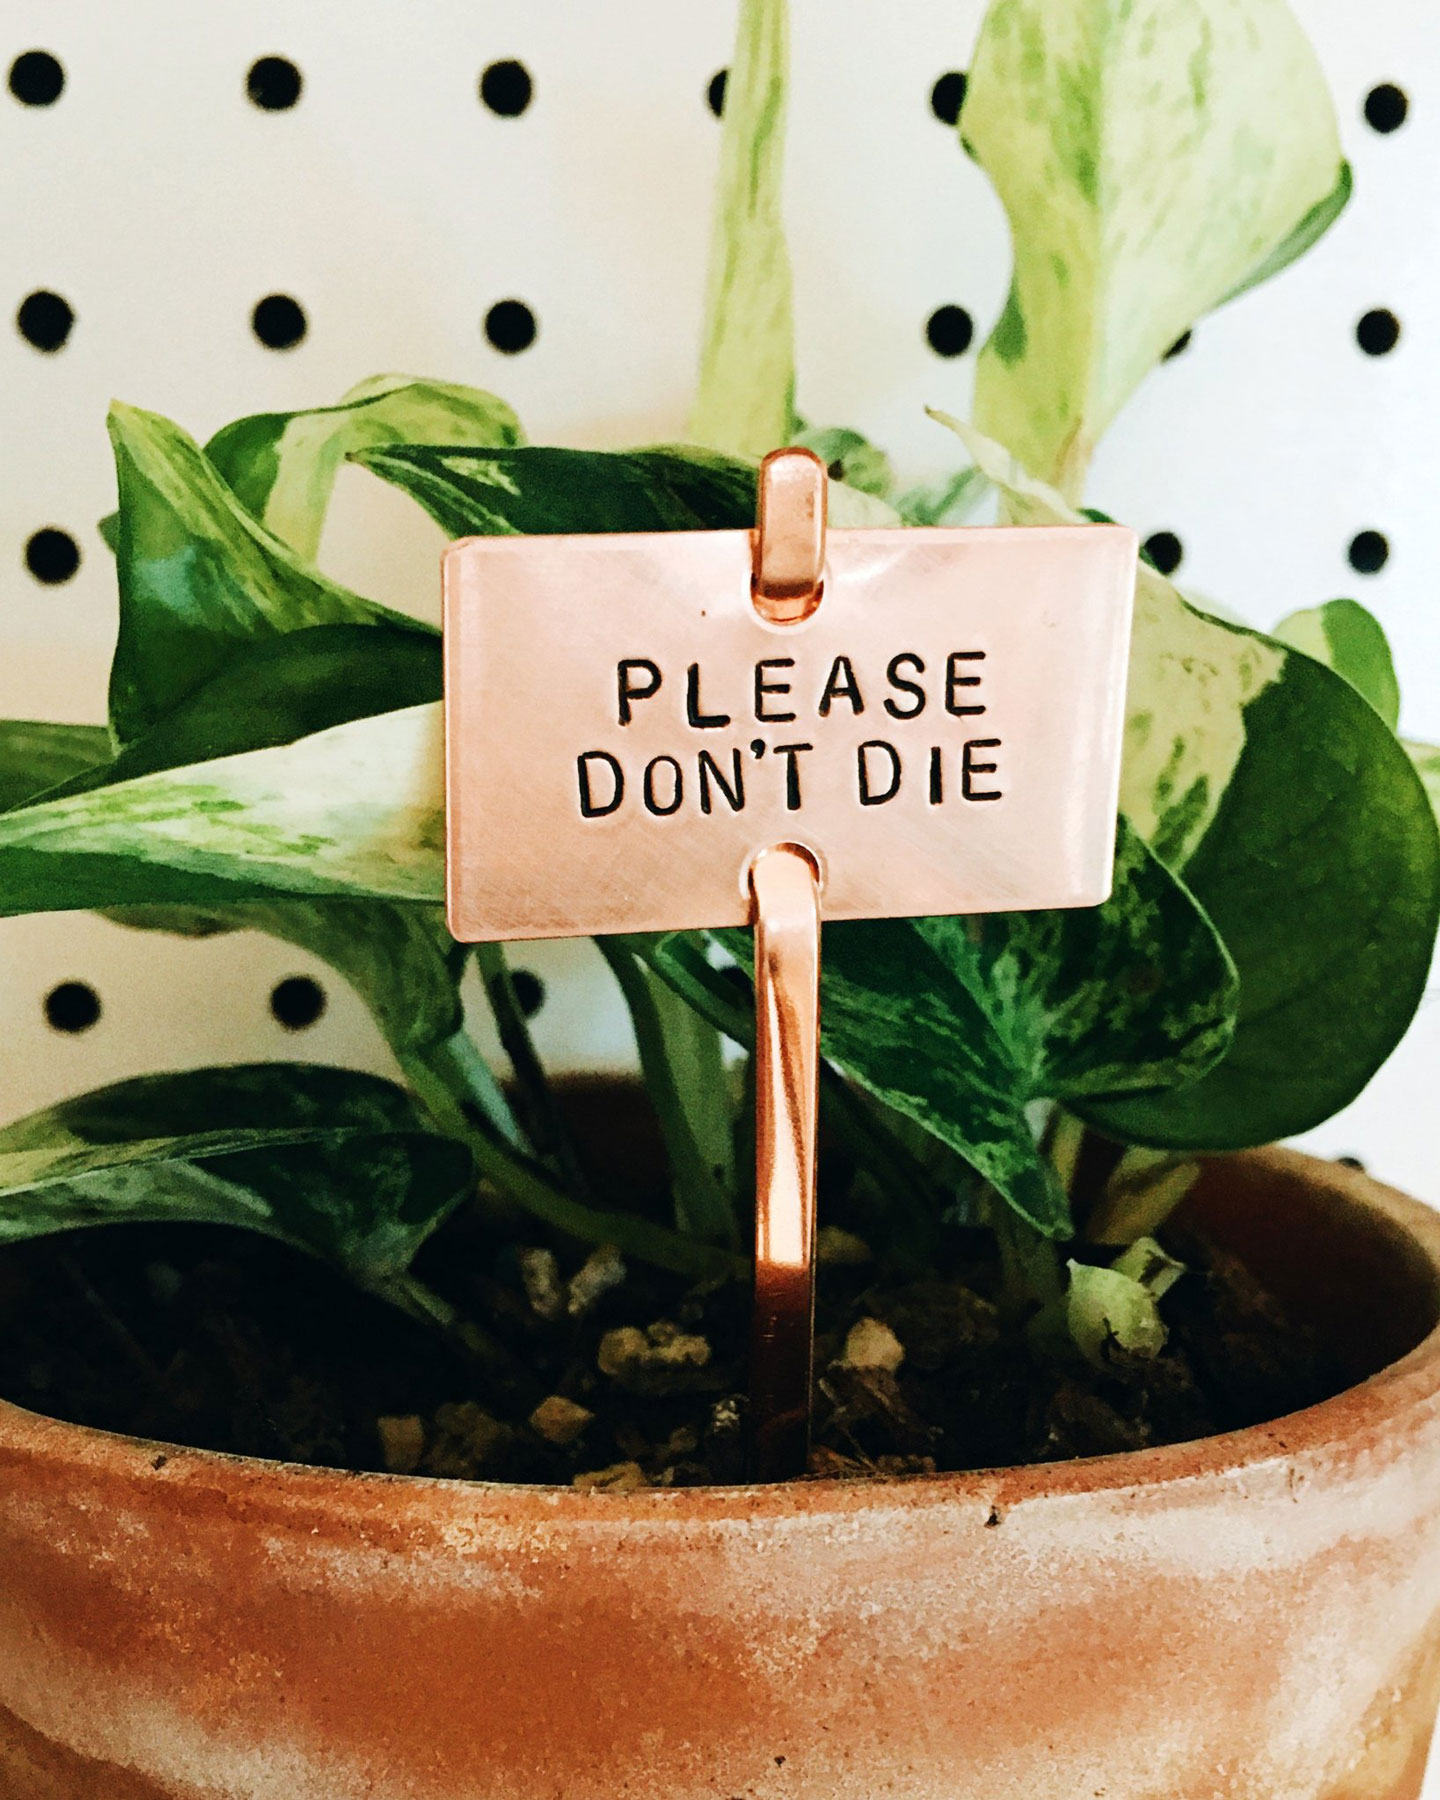 Gifts for plant lovers - Simplestamp Jewelry Plant Marker